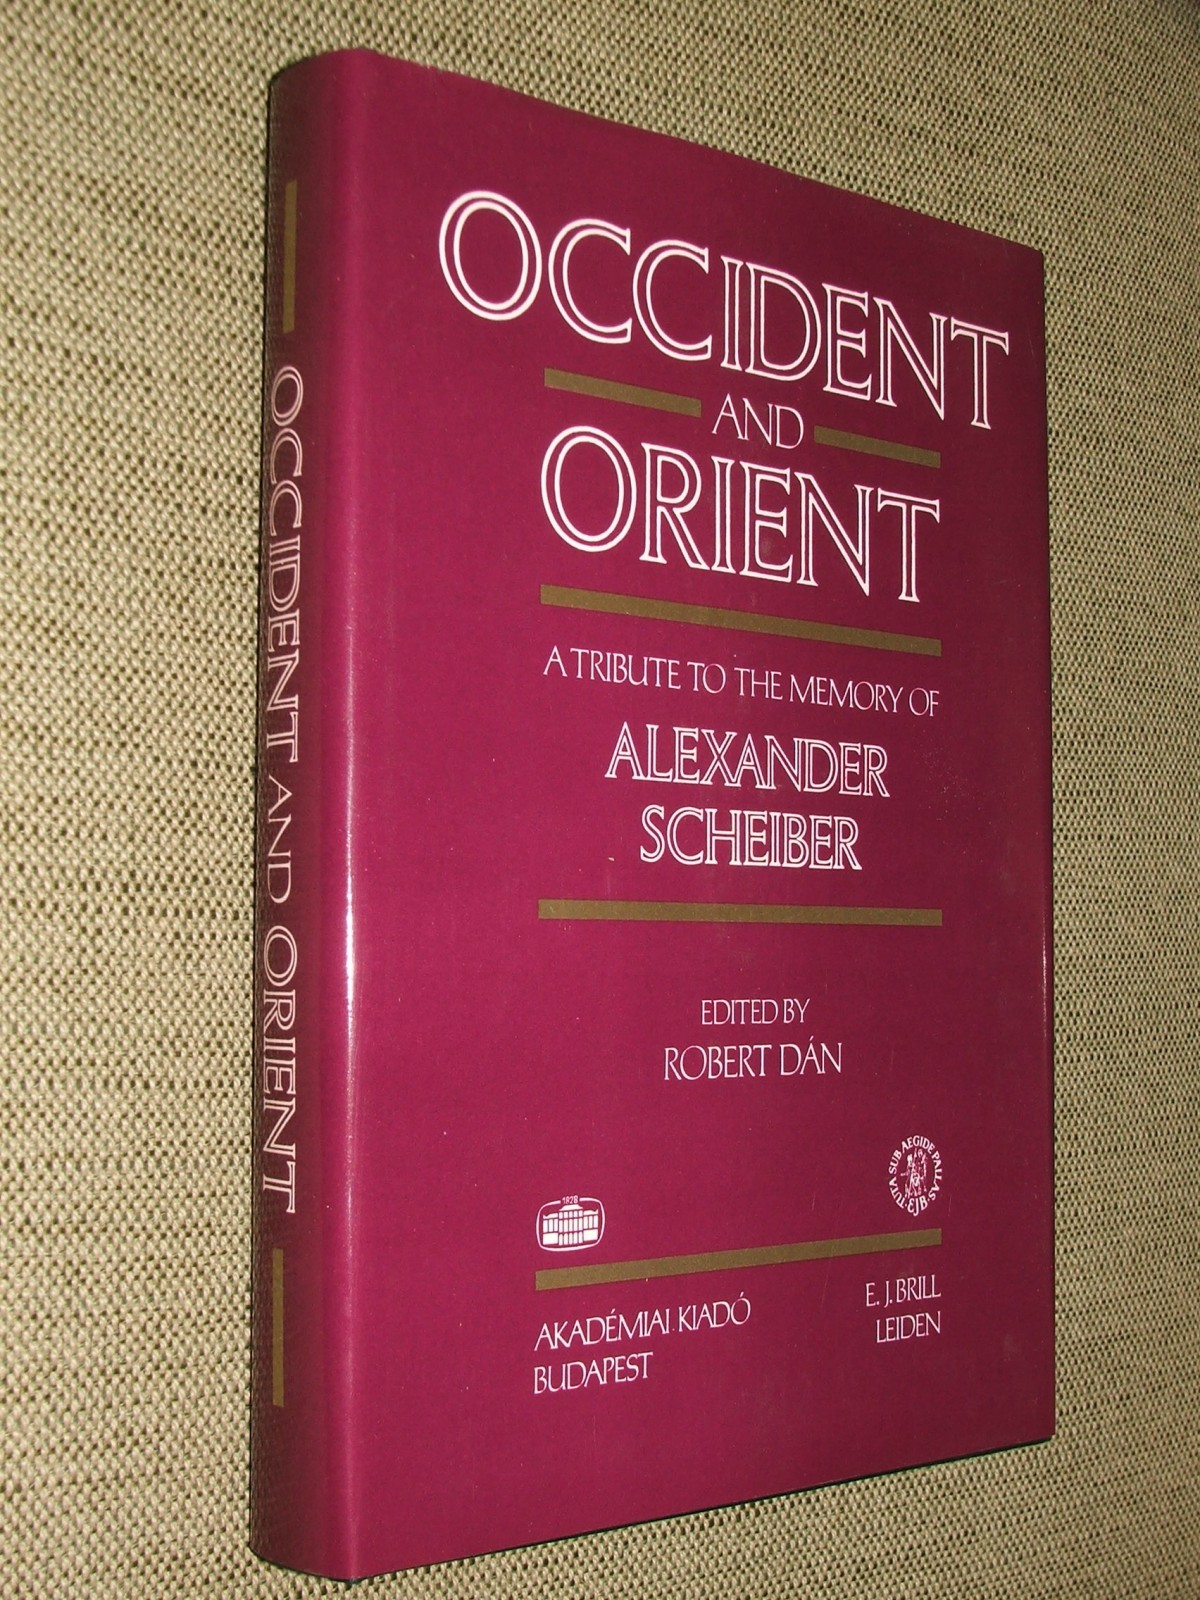 DÁN, ROBERT: Occident and orient